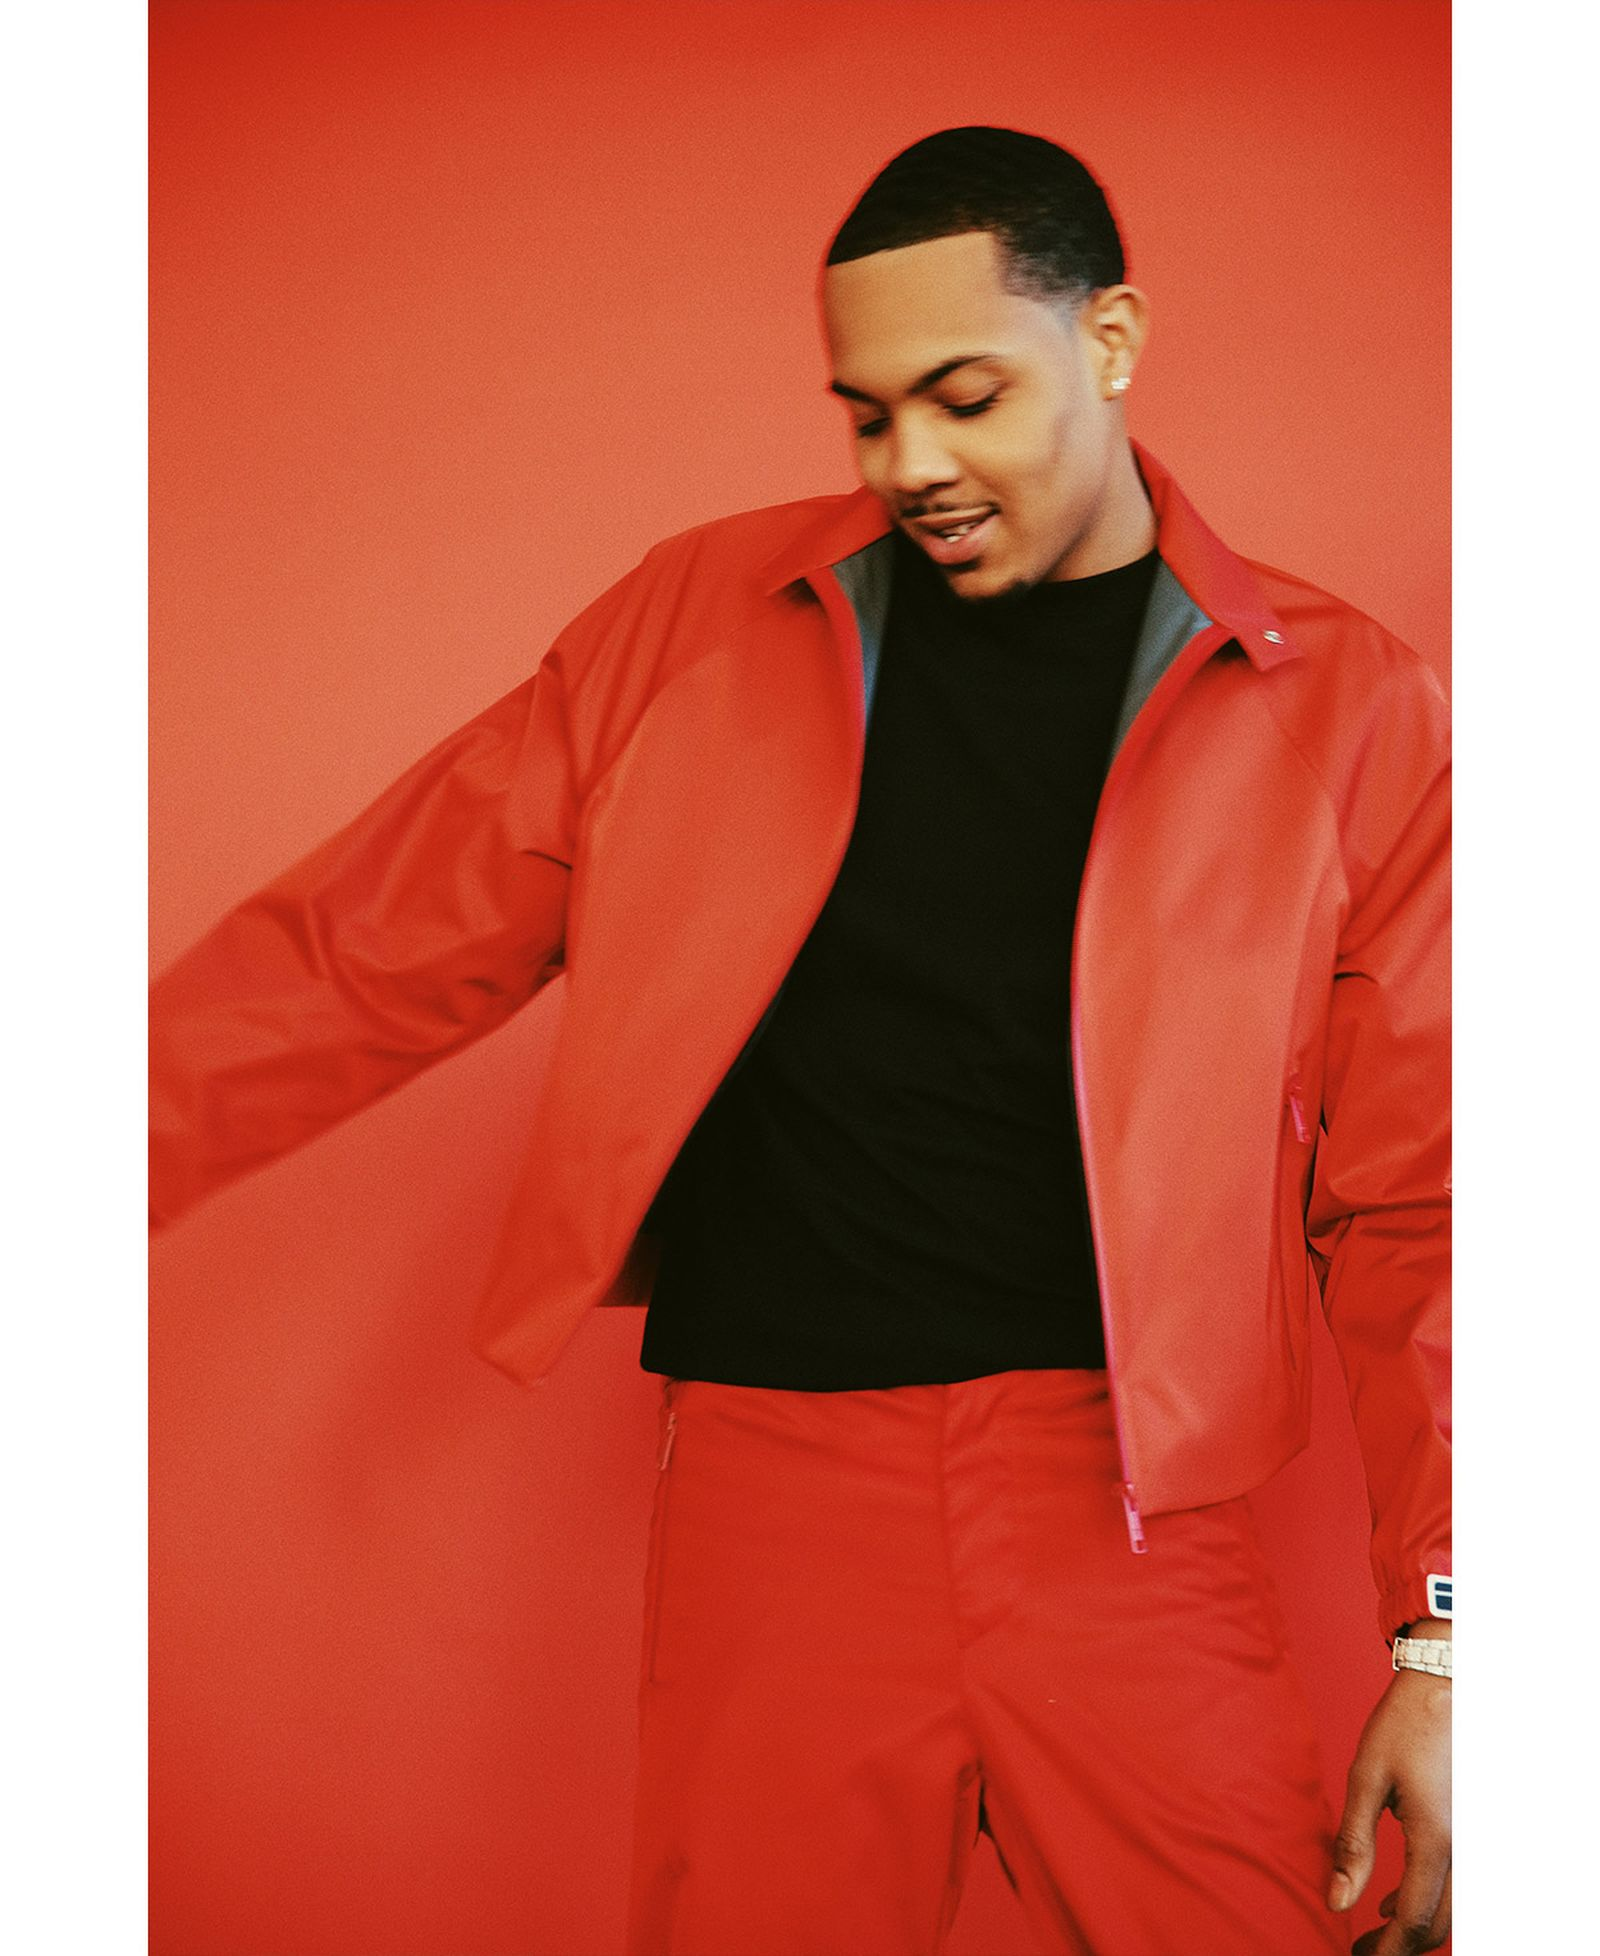 passion pain purpose g herbo creating new chicago story